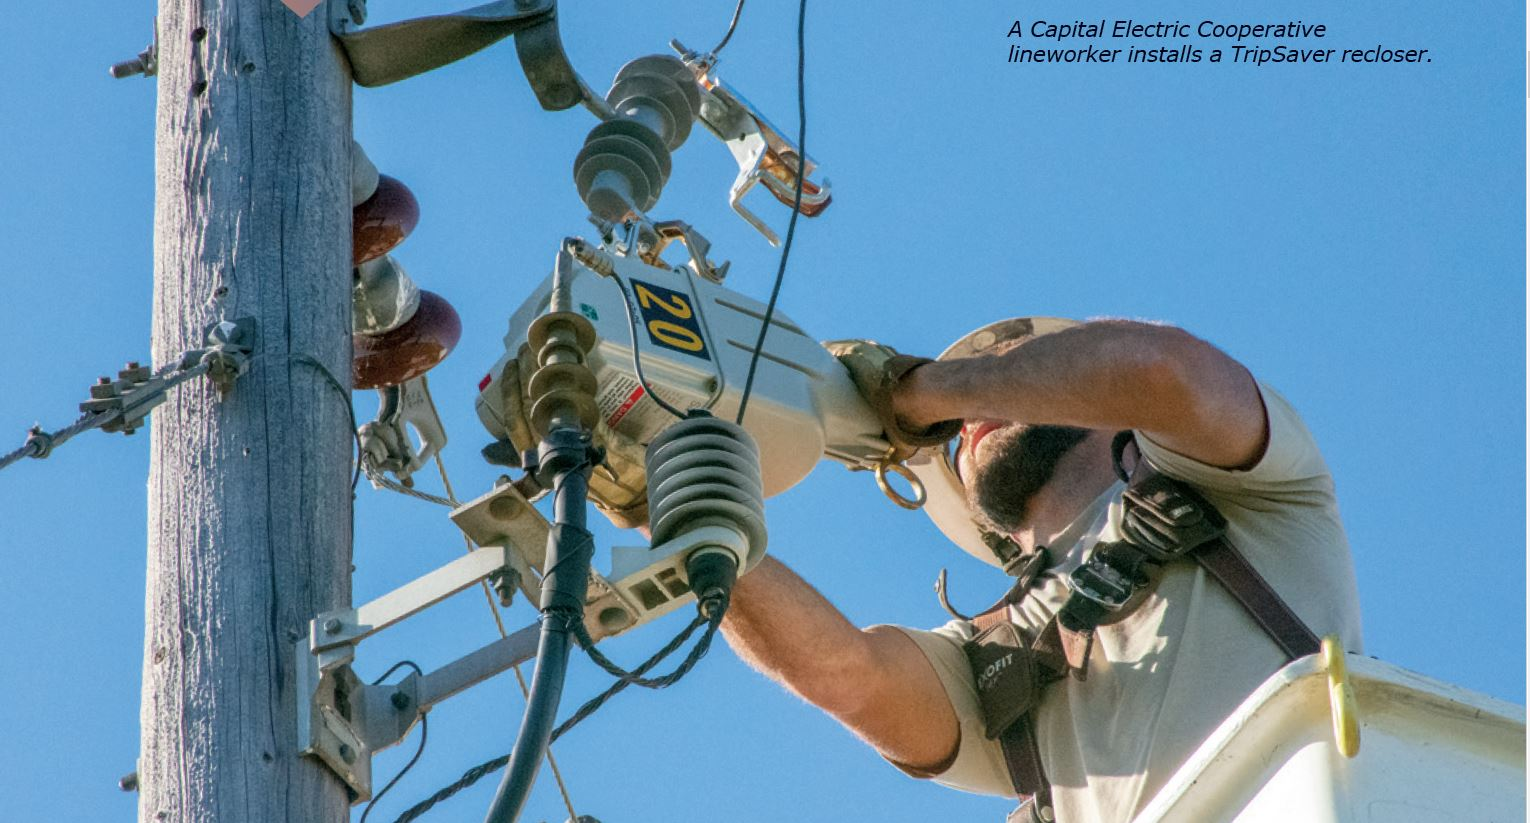 photo of line worker